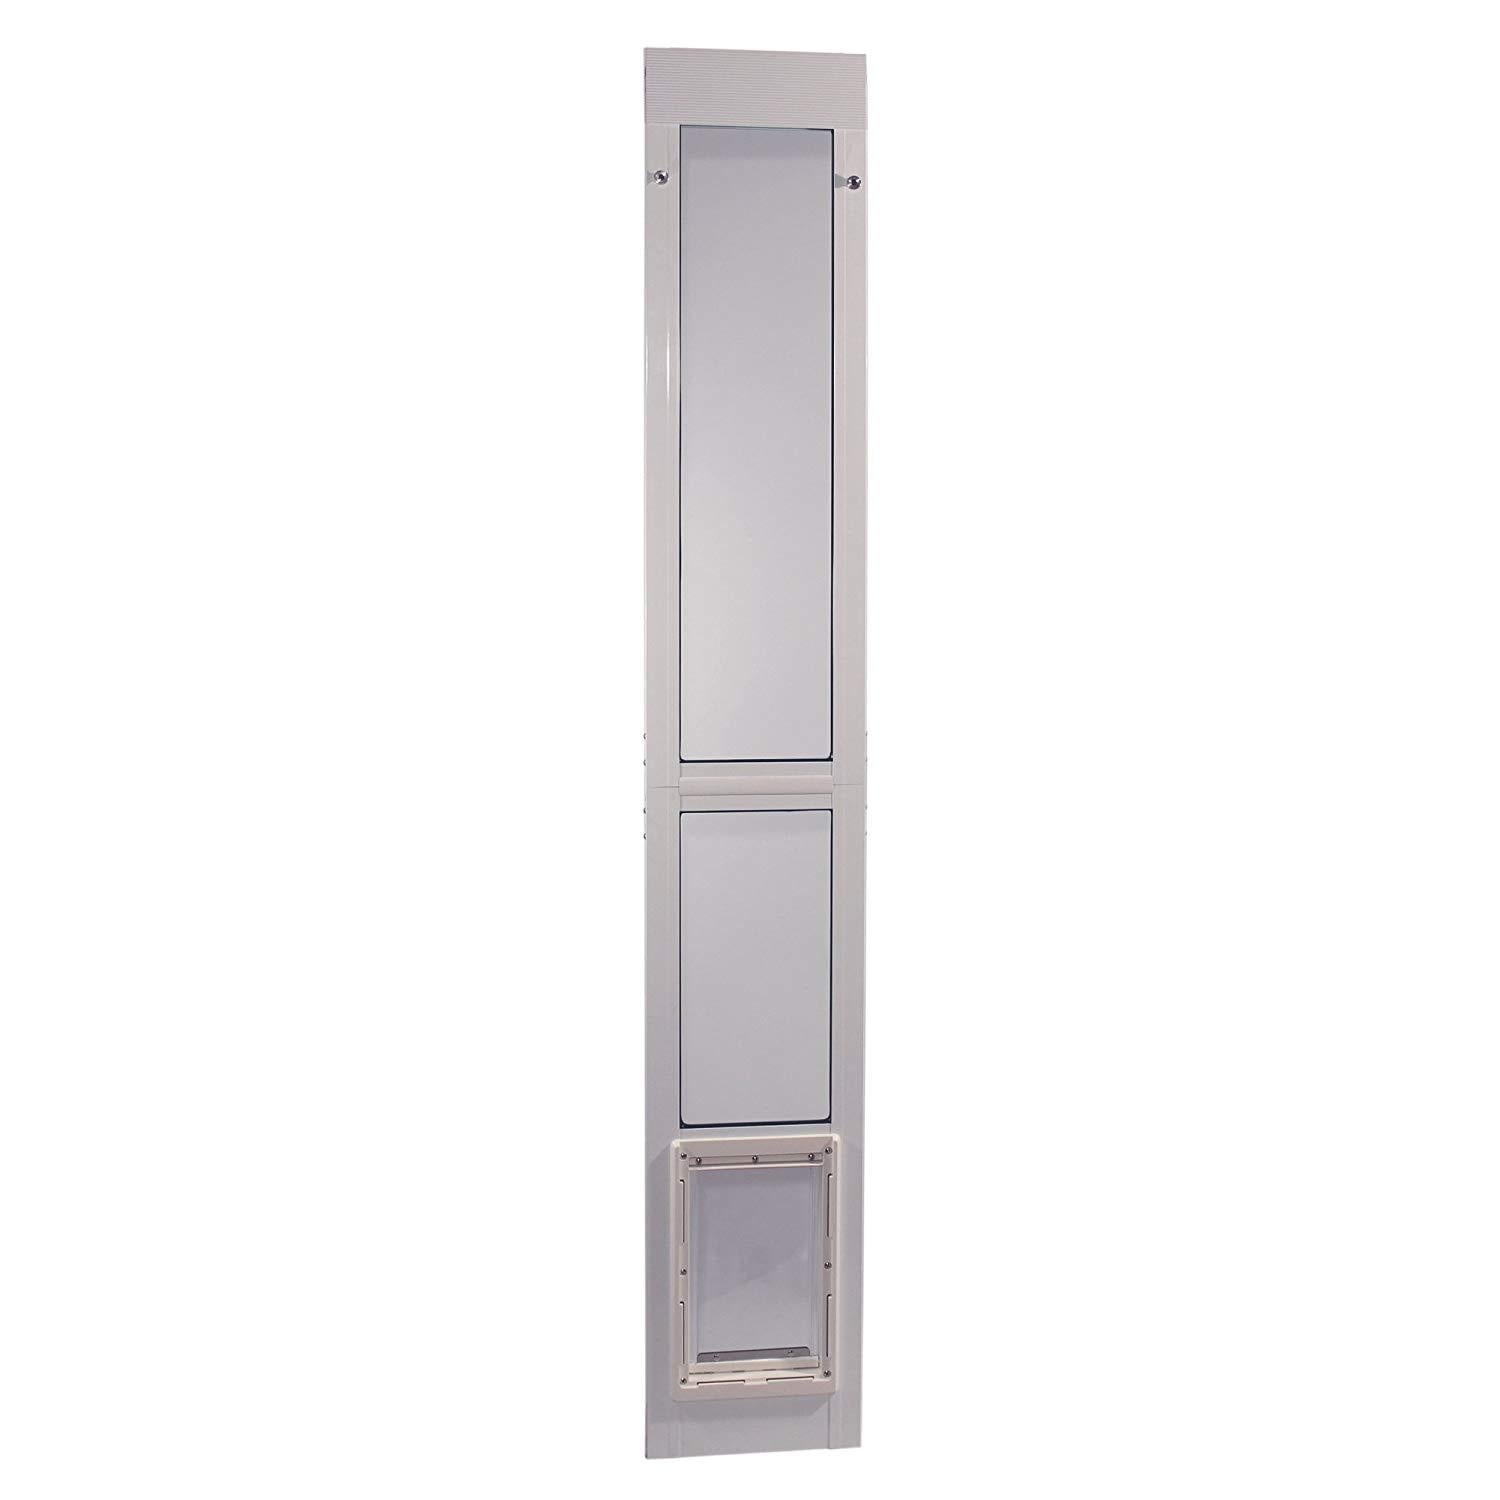 Vinyl Modular Pet Patio Door Medium White 2.5″ x 14″ x 80″